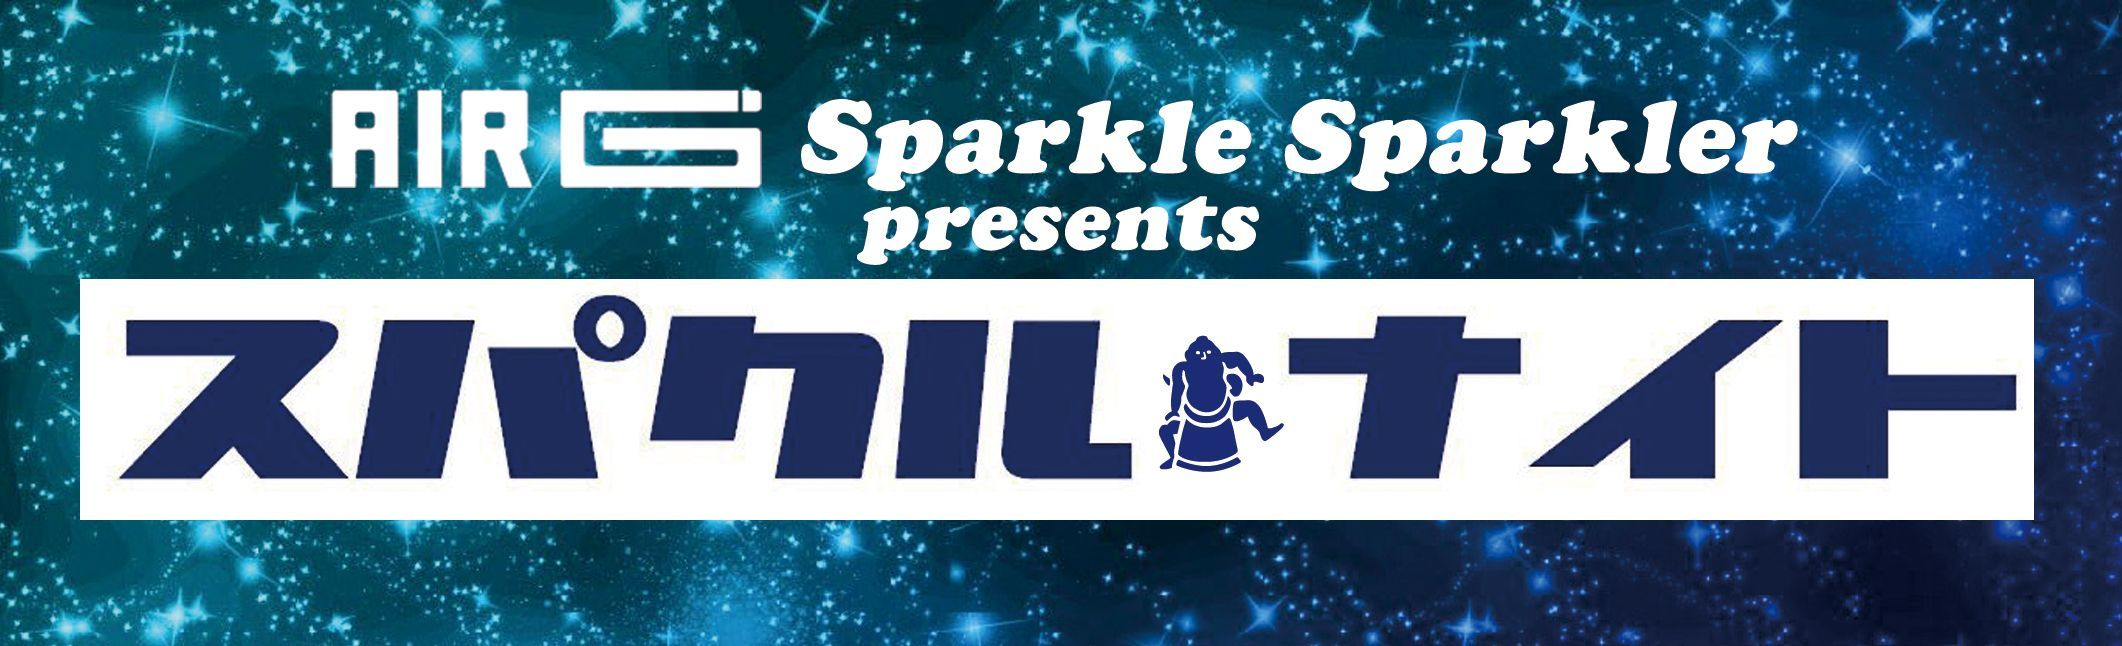 『AIR-G' Sparkle Sparkler presents スパクル☆ナイト Vol.6』